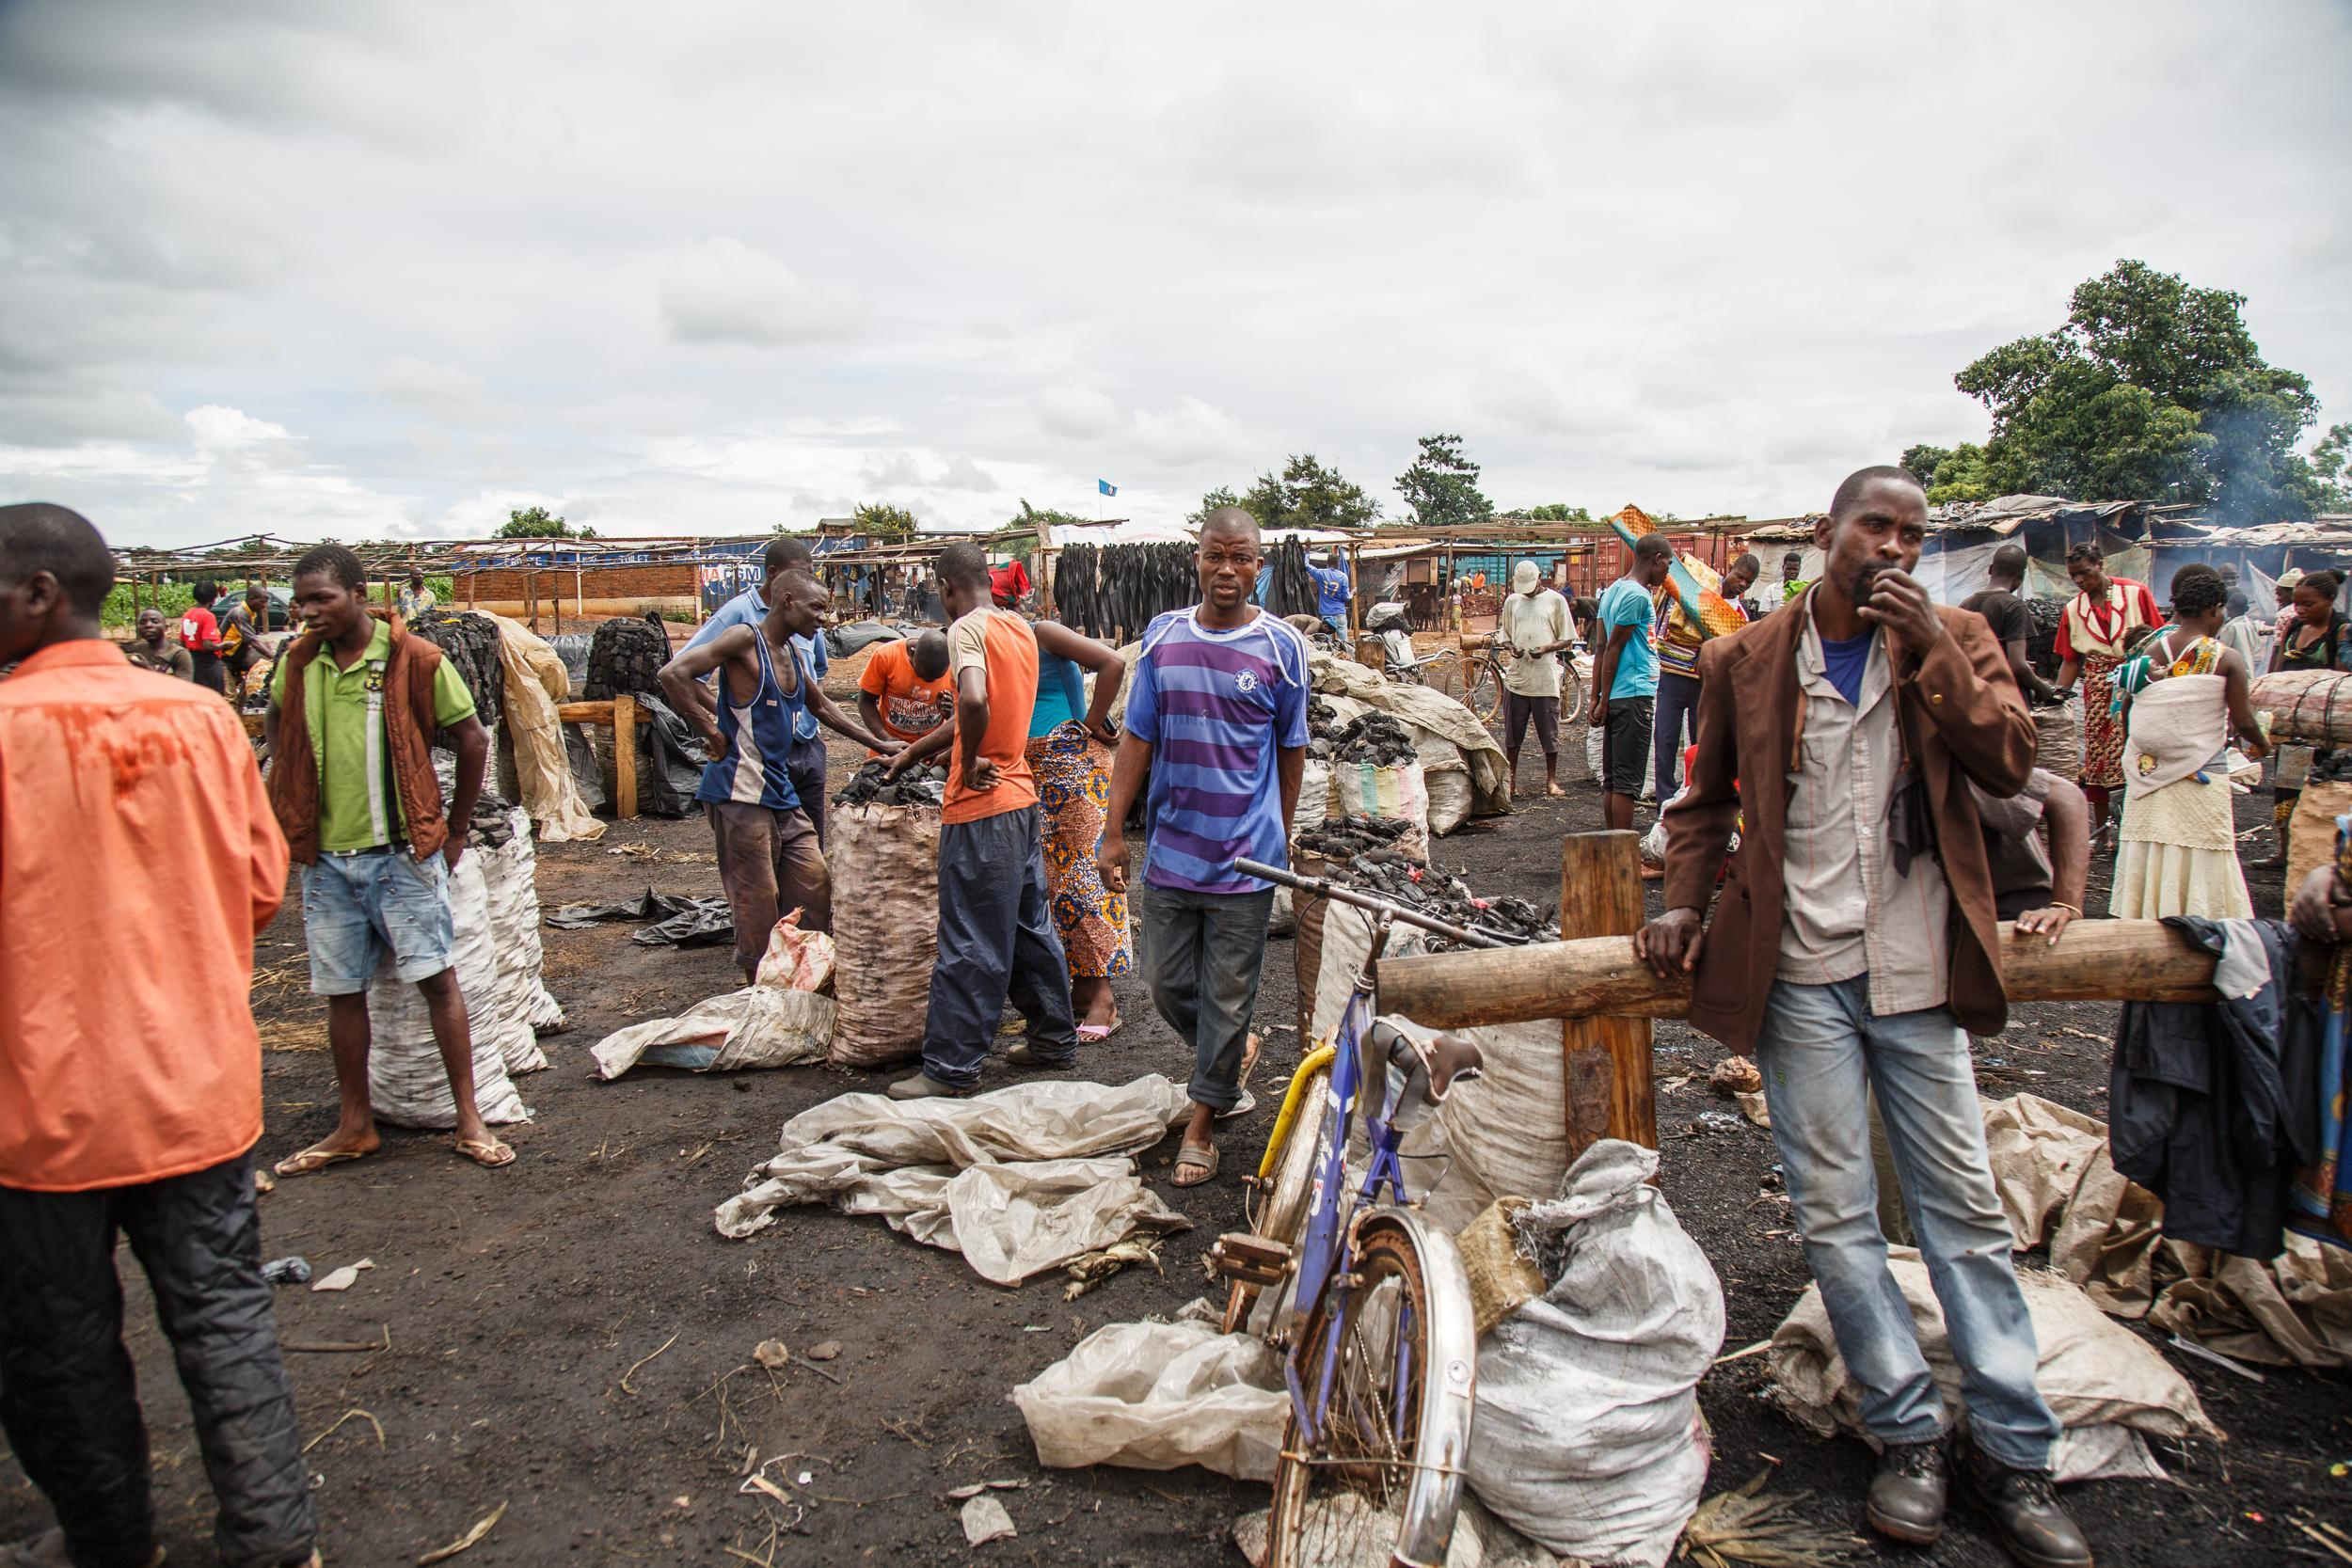 The Mgona charcoal market in Lilongwe is well organised, even though the business is illegal.